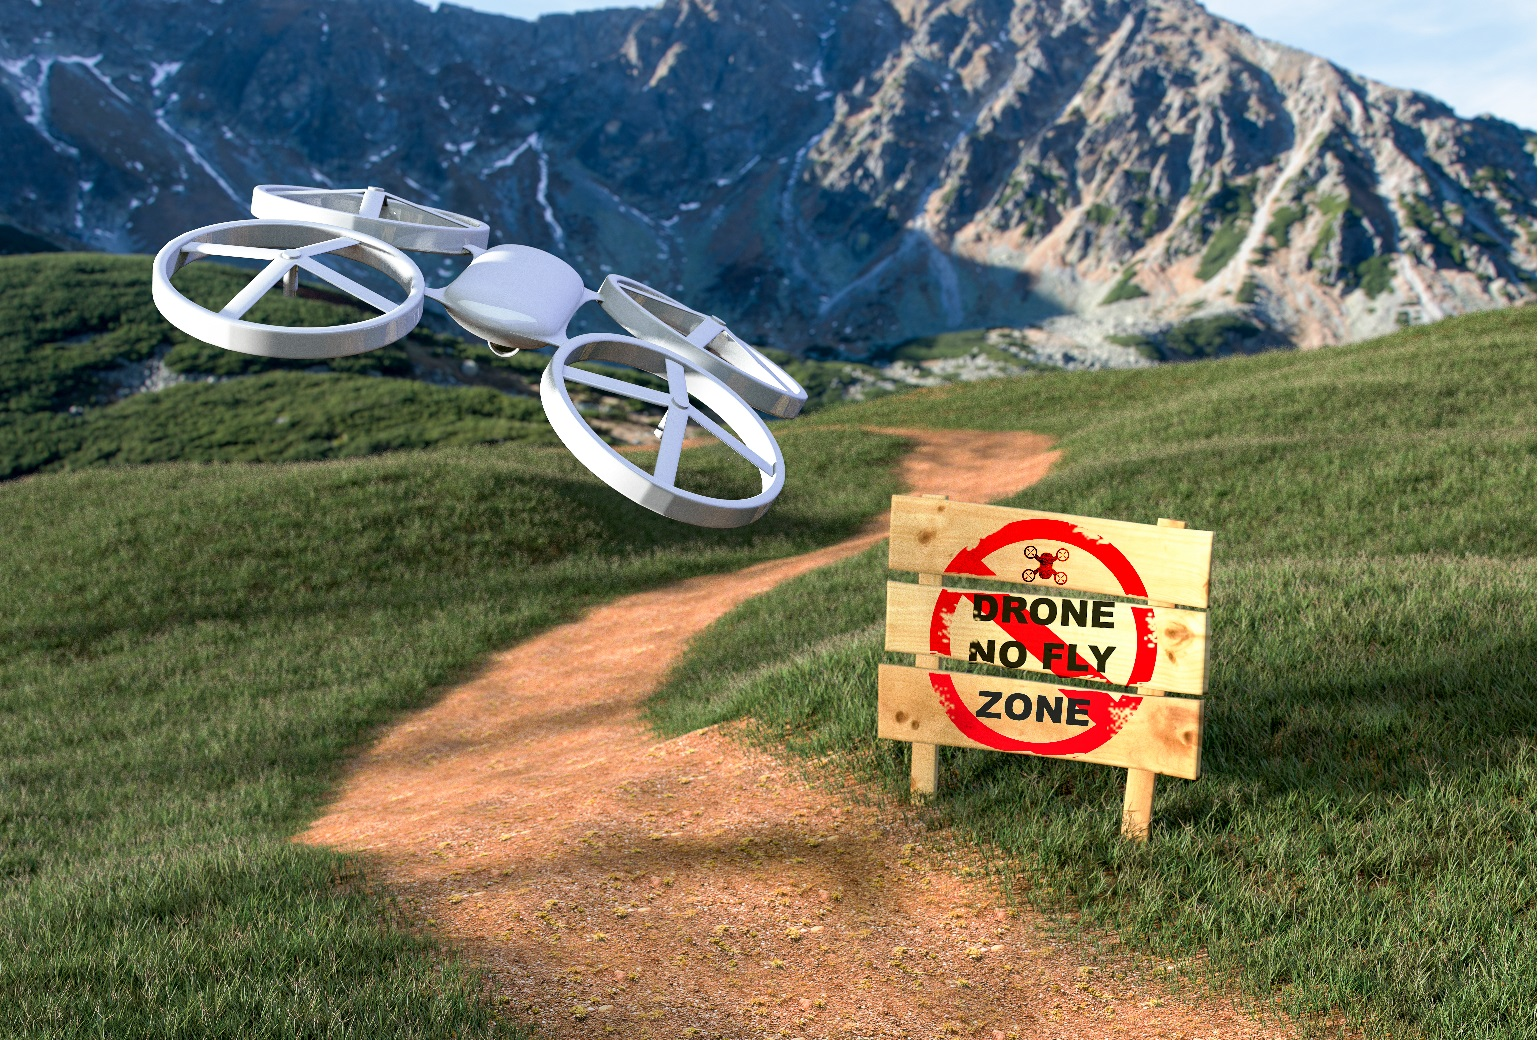 Drone (UAV) Laws: Focused on Safety or Keeping Australia Back?